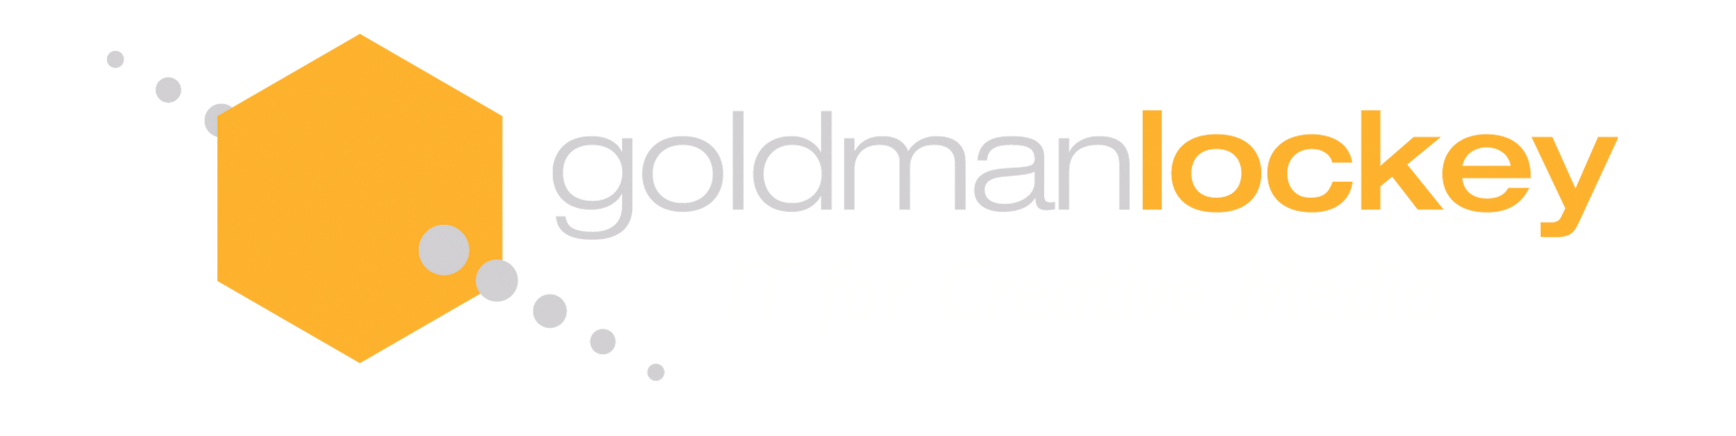 Goldmanlockey Consulting